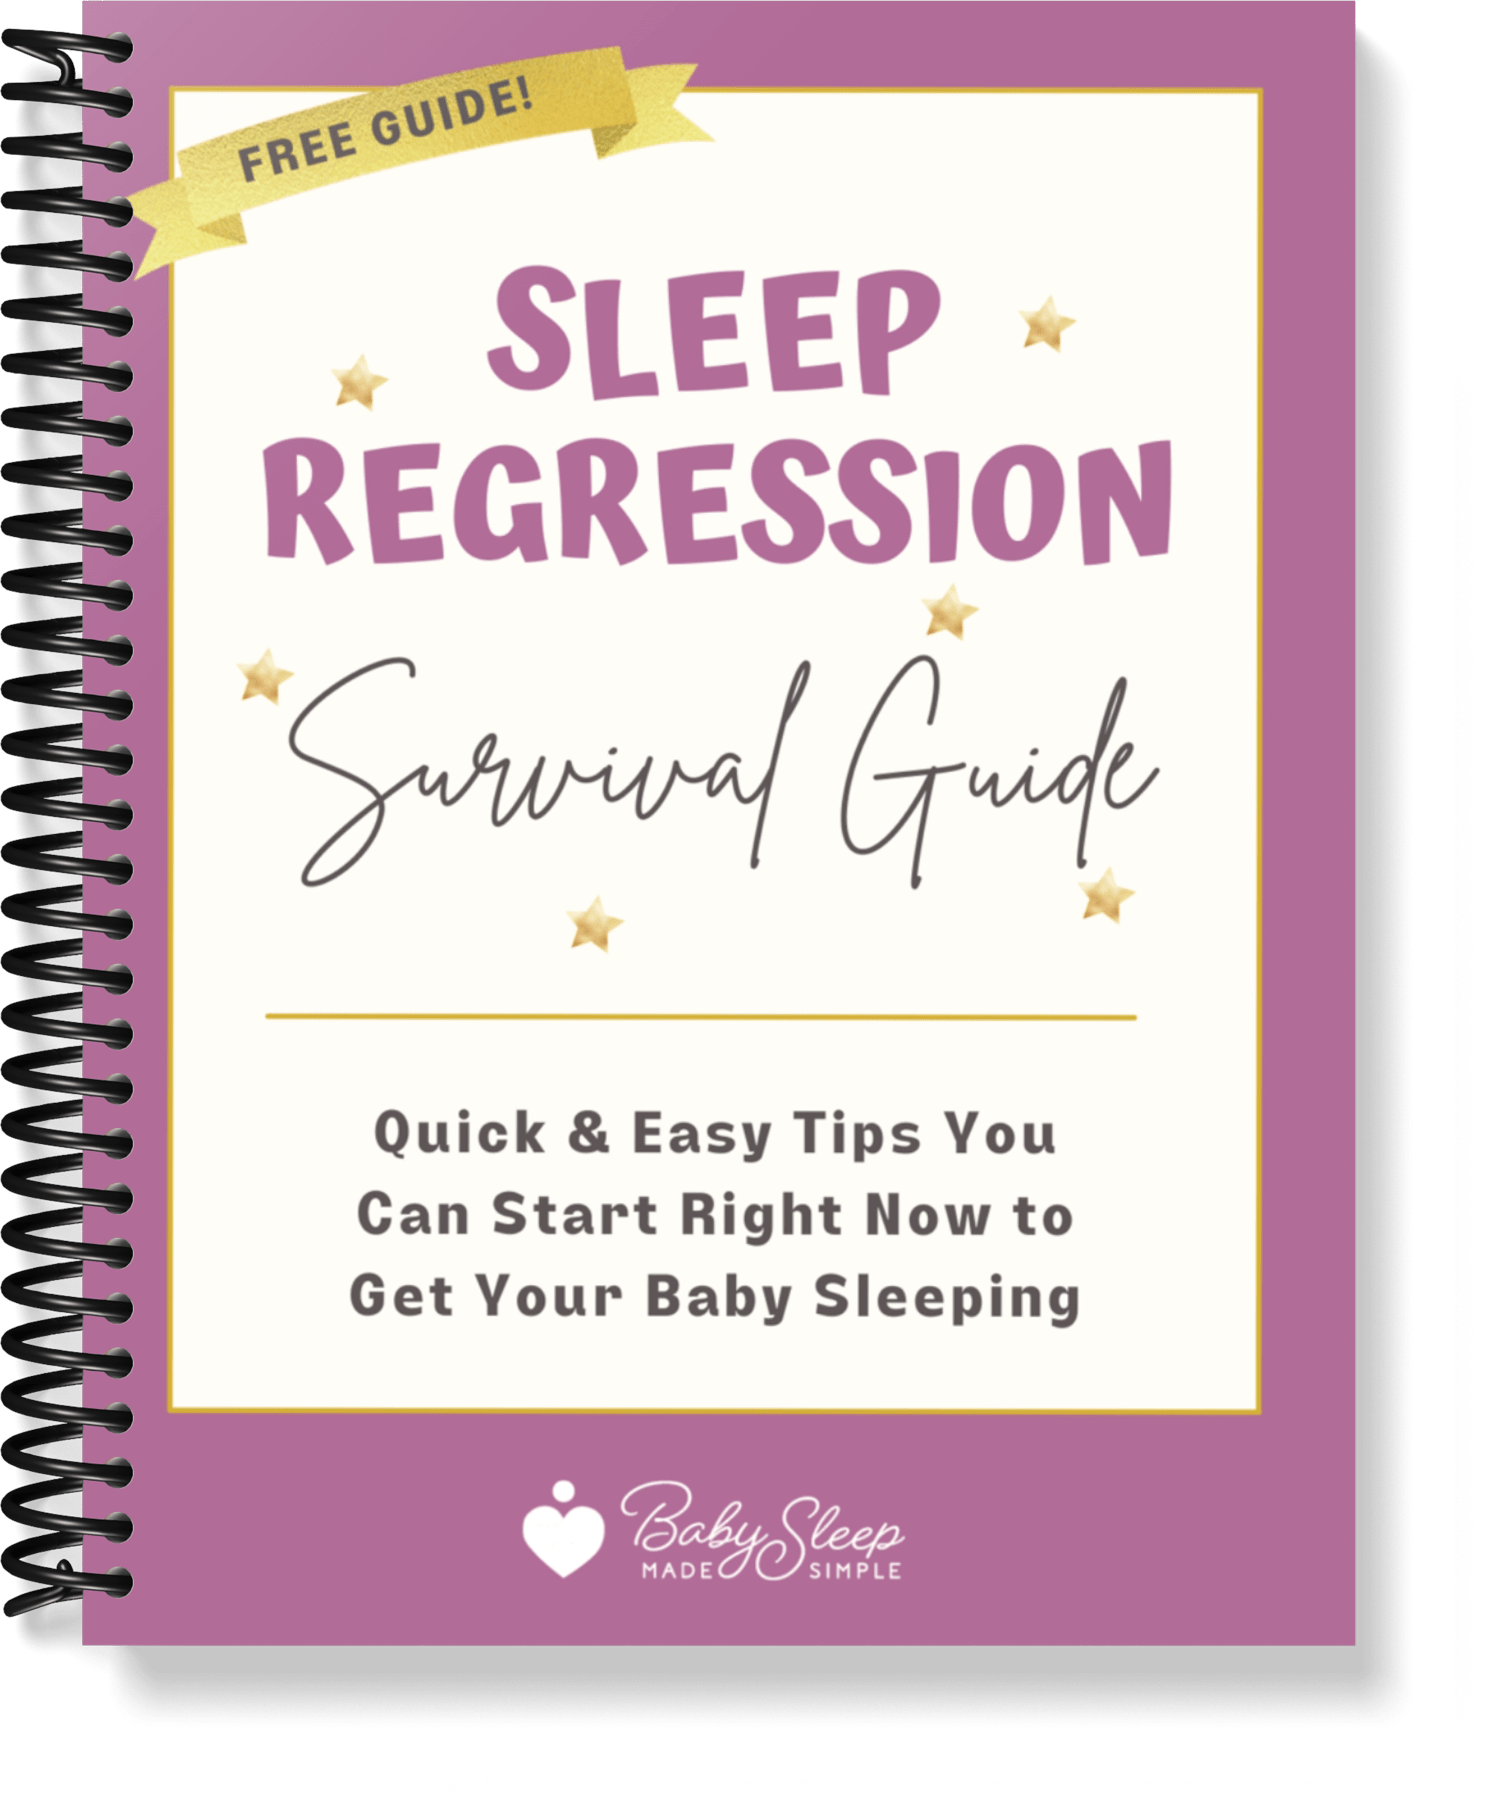 a guide for parents to help their baby sleep better